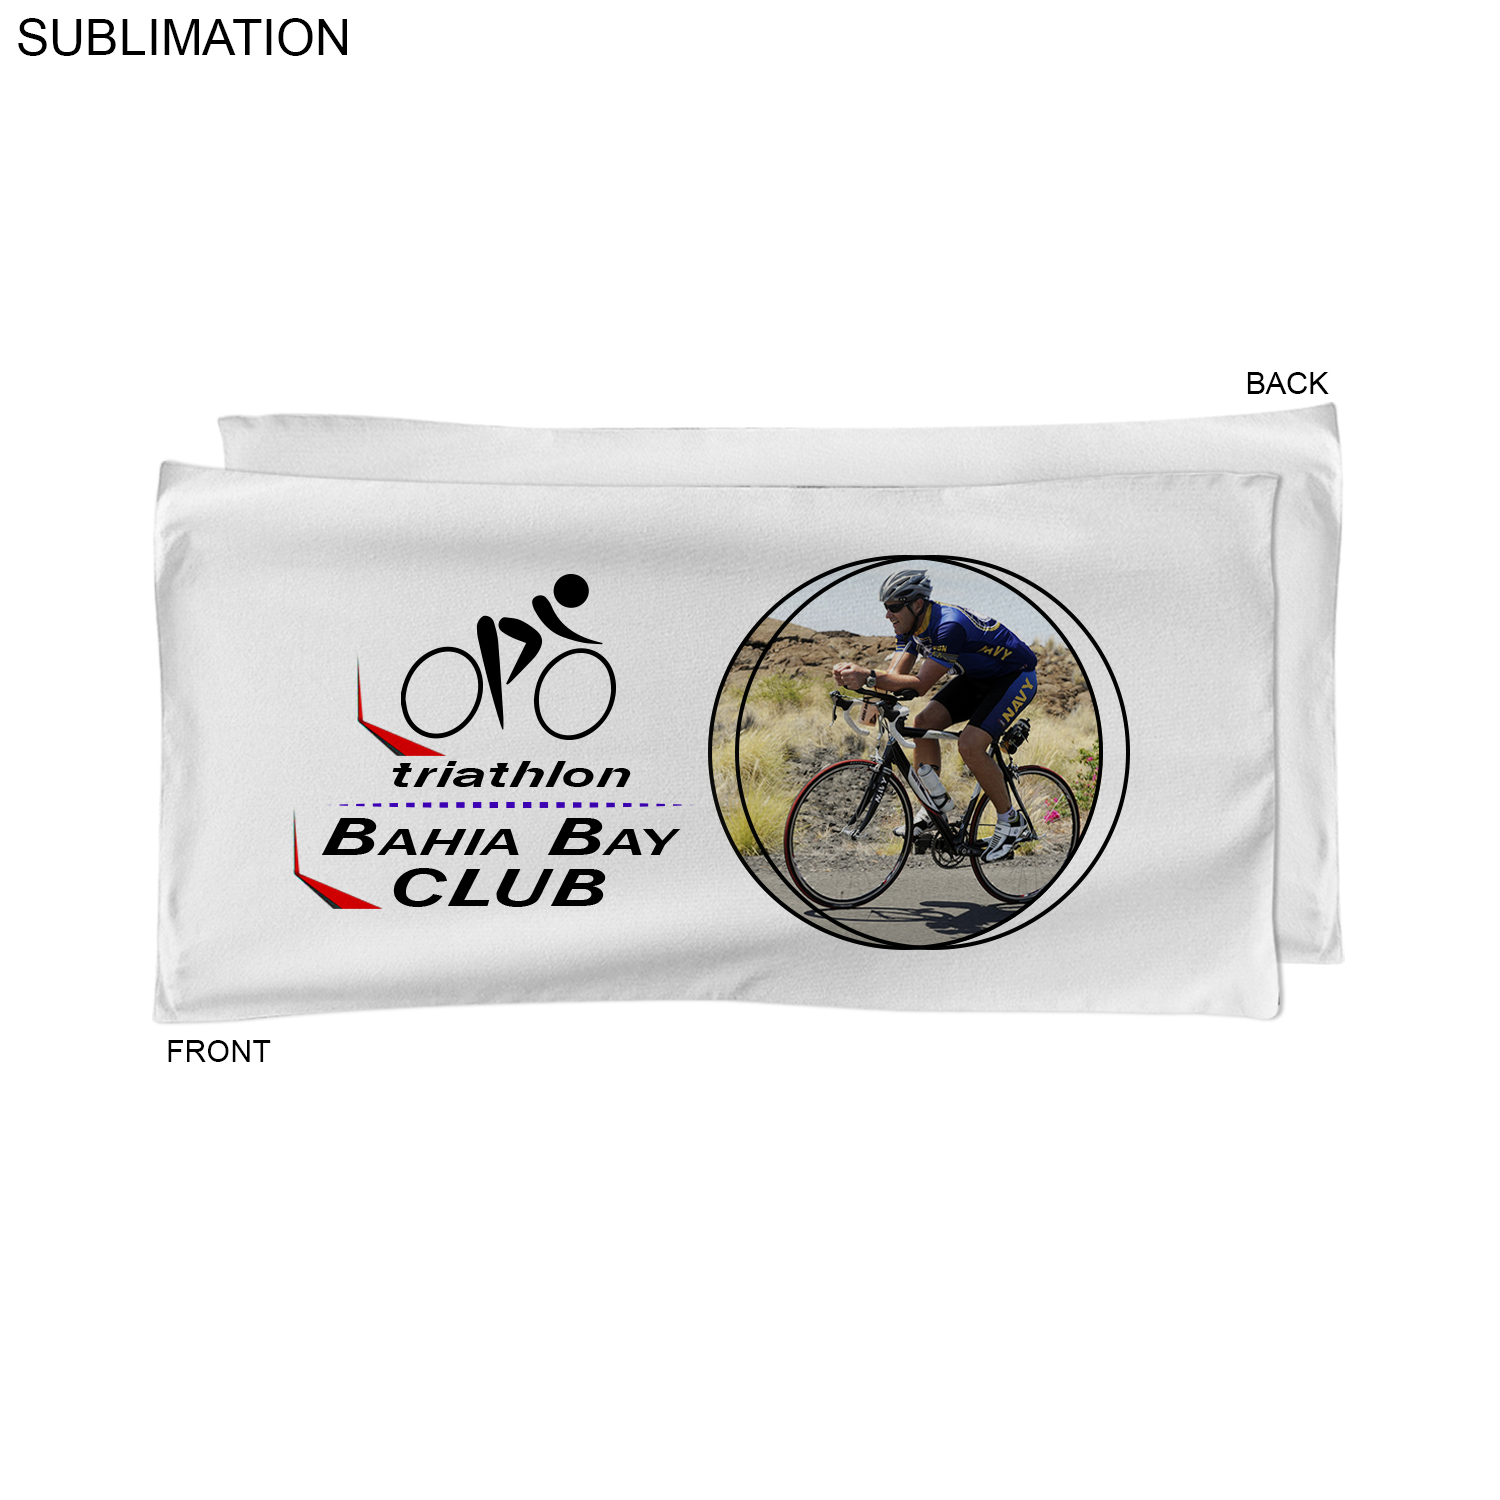 Microfiber Terry Triathlon Towel, 20x40, #SU462W-5, Full Colour Imprint